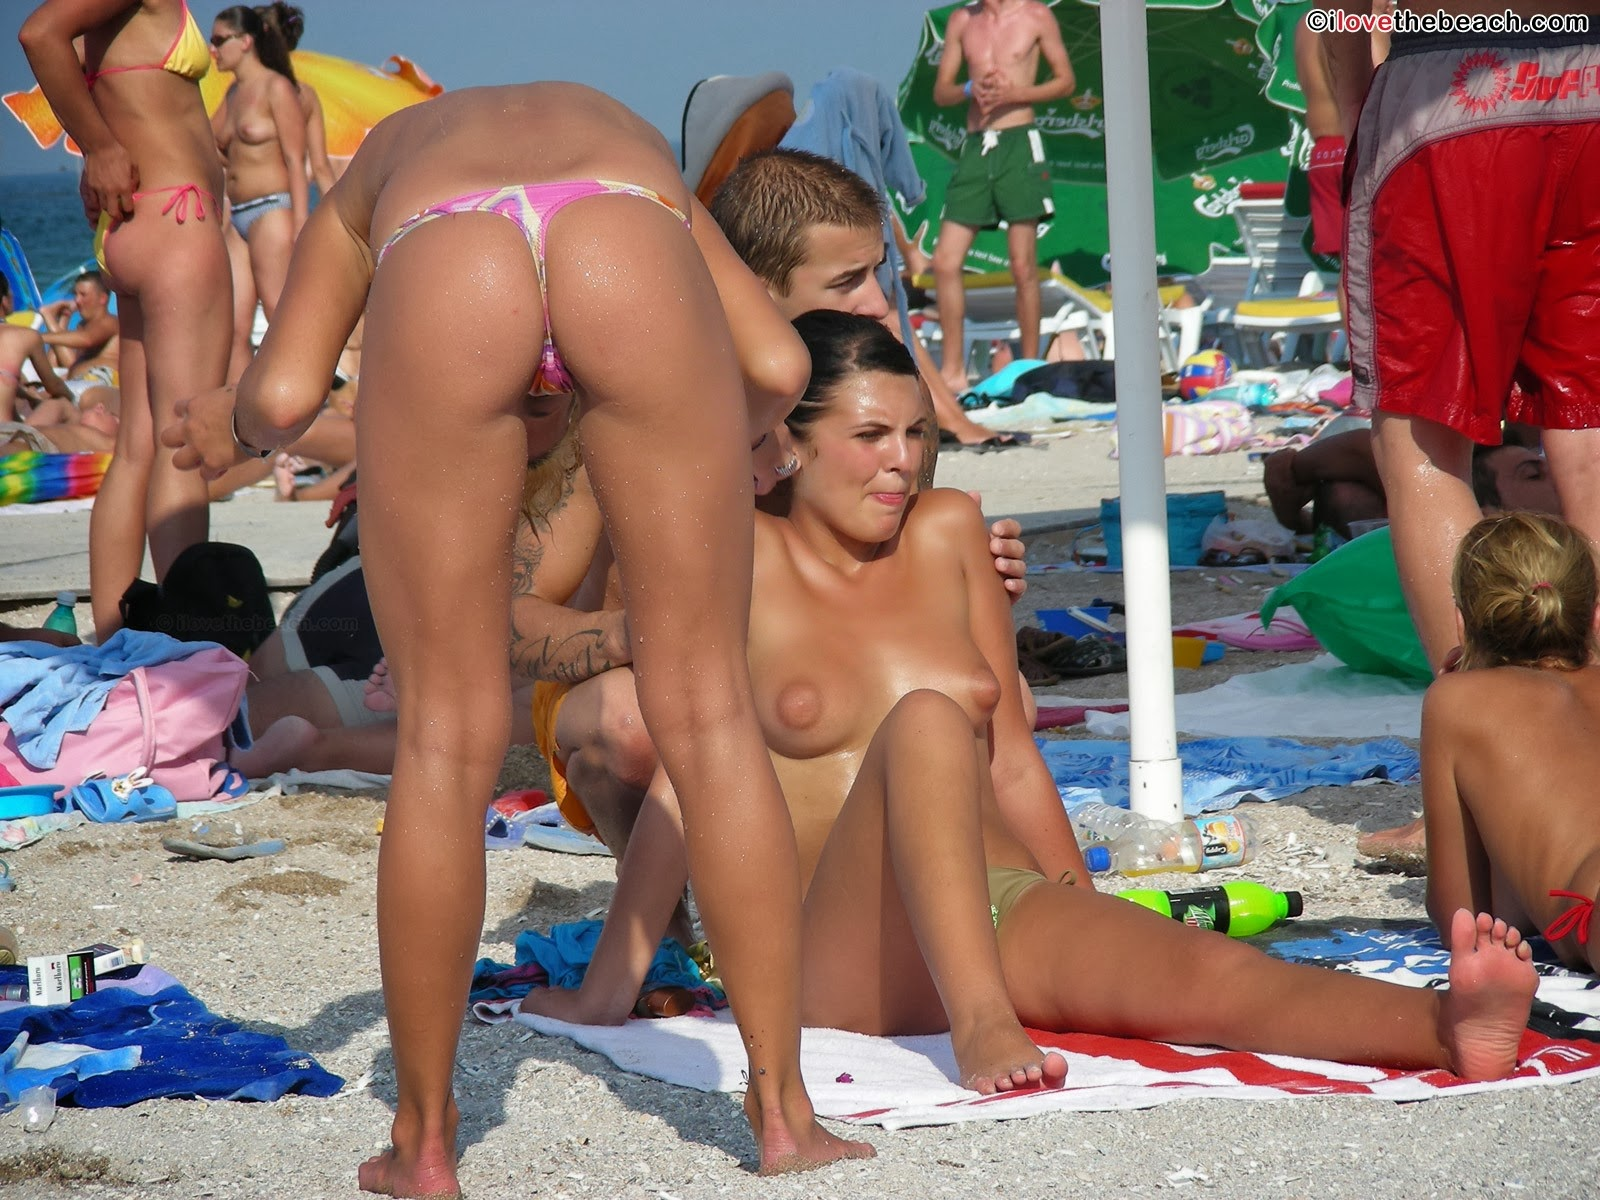 Bend Over at Topless Beach